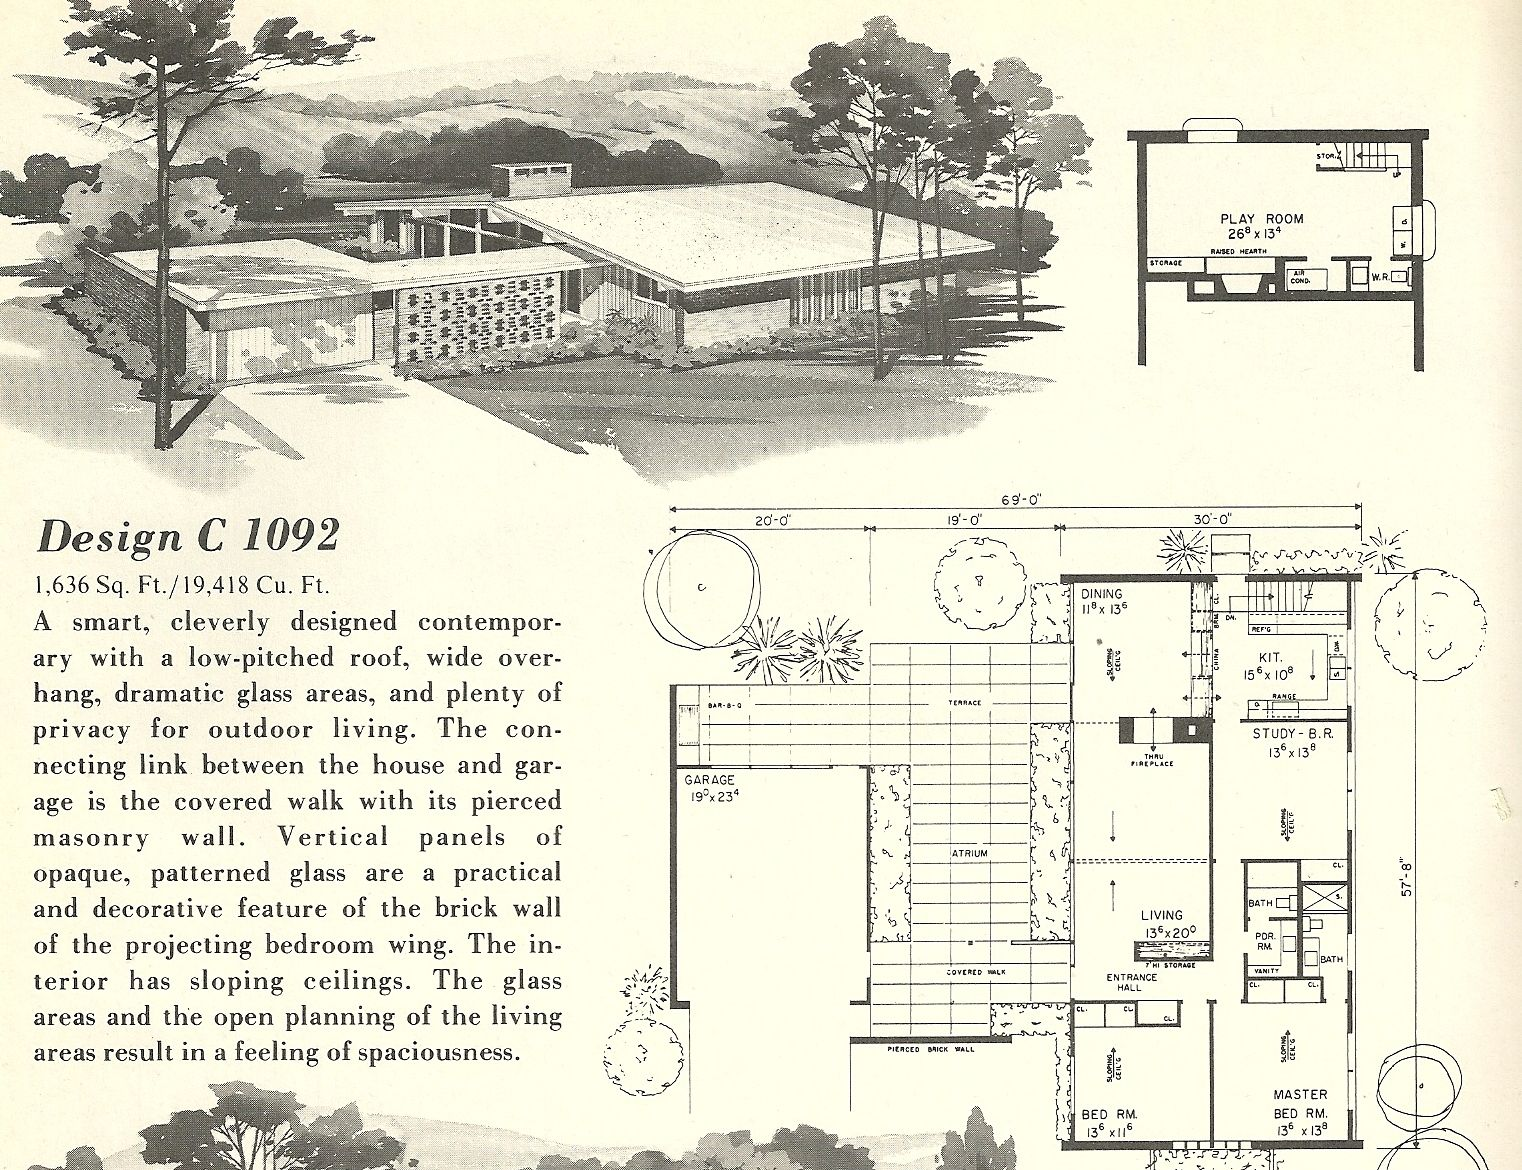 Elegant Mid Century Modern House Plans | Vintage House Plans 1960s: Spanish Style  And Mid Century